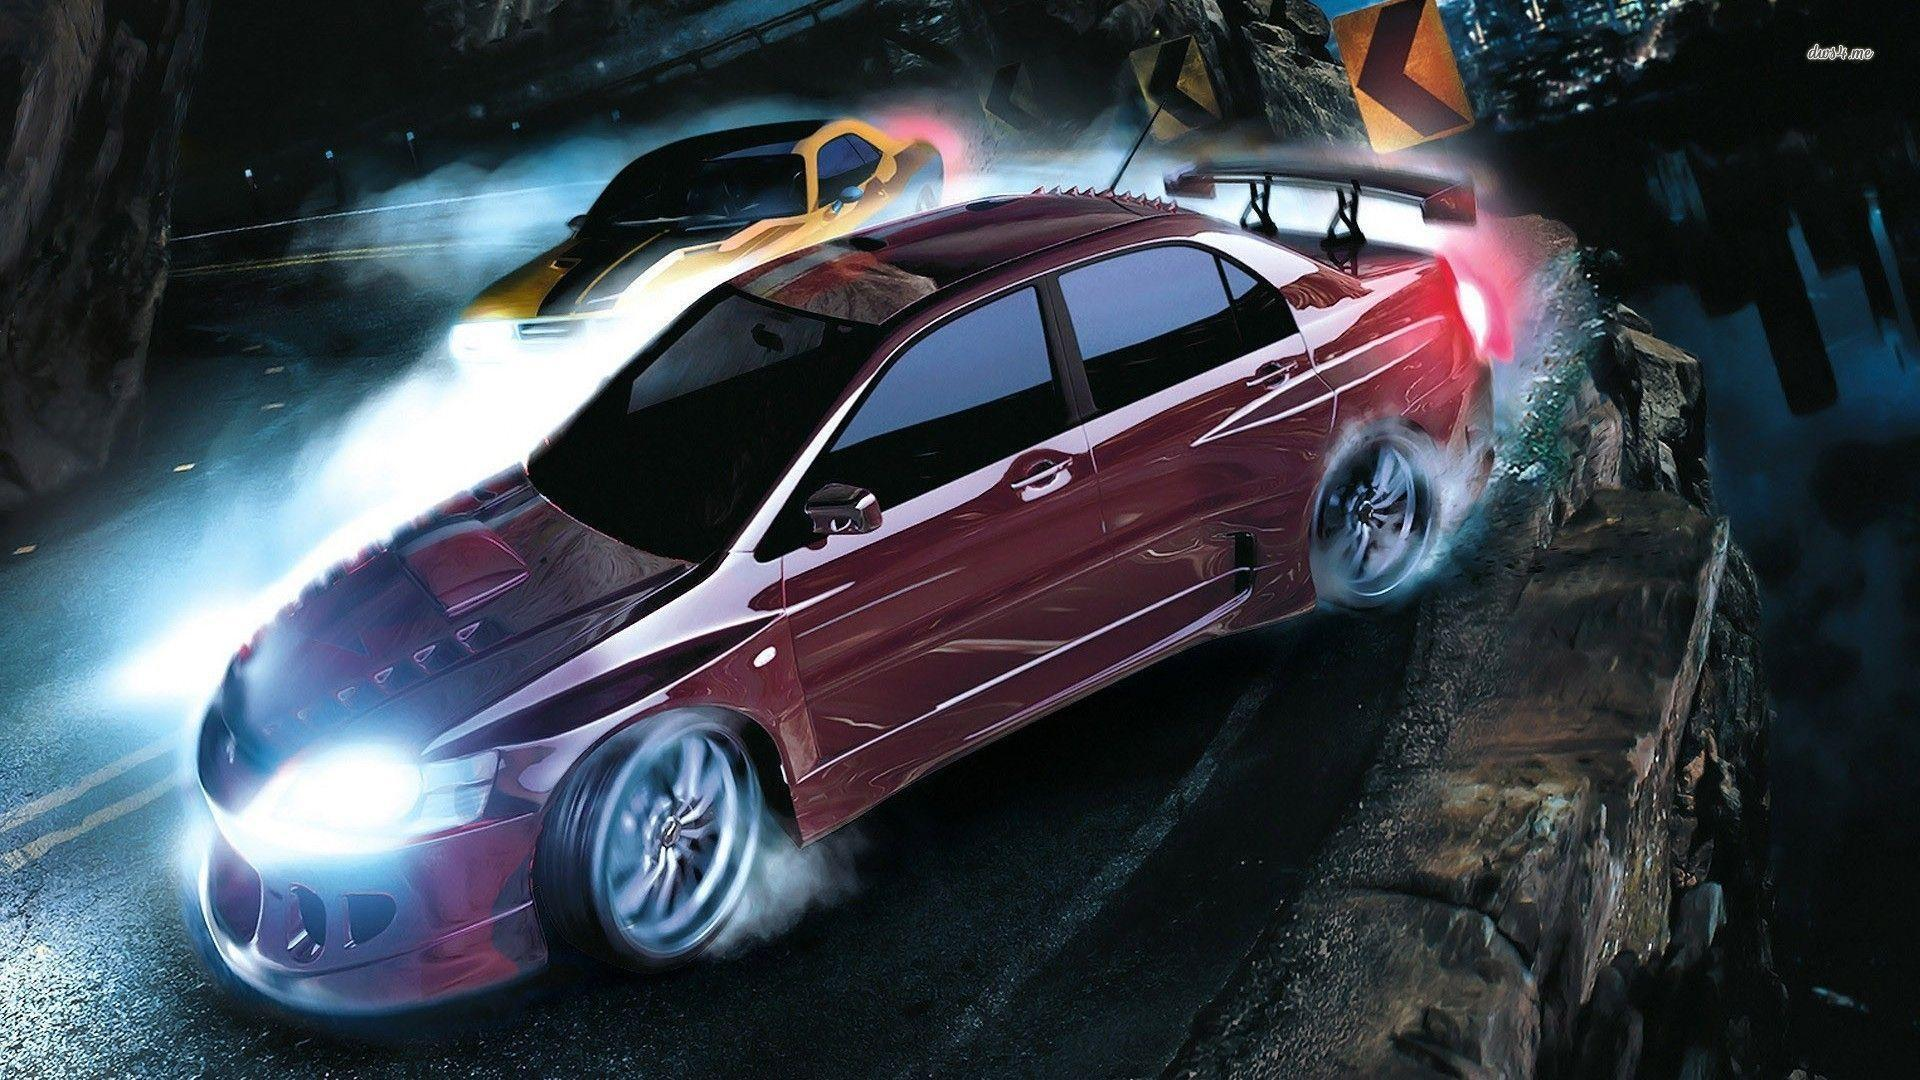 Need for speed carbon wallpapers wallpaper cave for Need for speed wallpaper